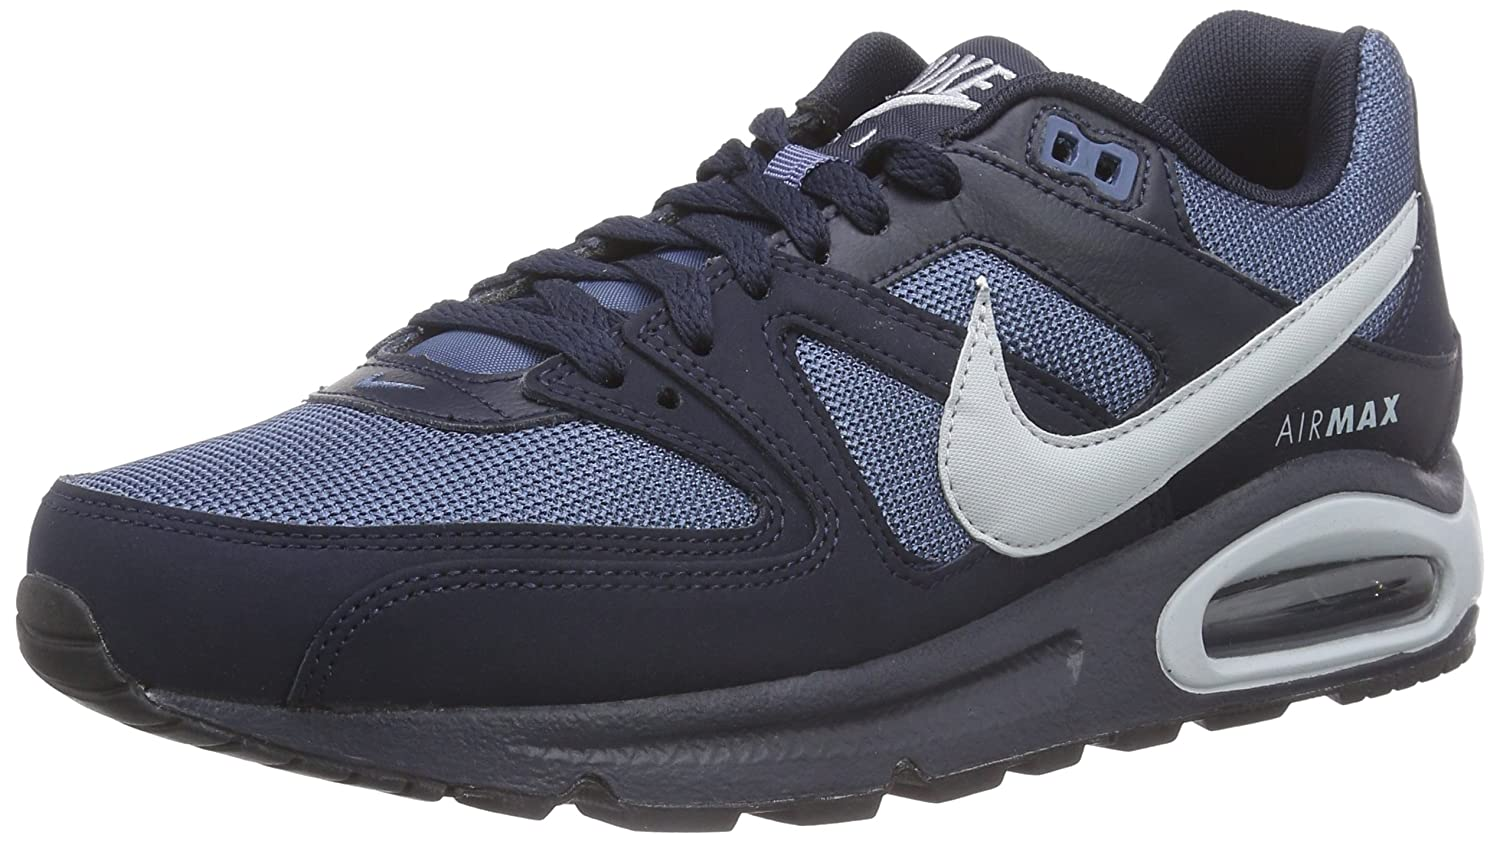 12ab4e56be Nike Men Trainers Air Max Command, Blue (dark Obsidian/wolf Grey/new  Slate/wolf Grey), 6 UK: Amazon.co.uk: Shoes & Bags